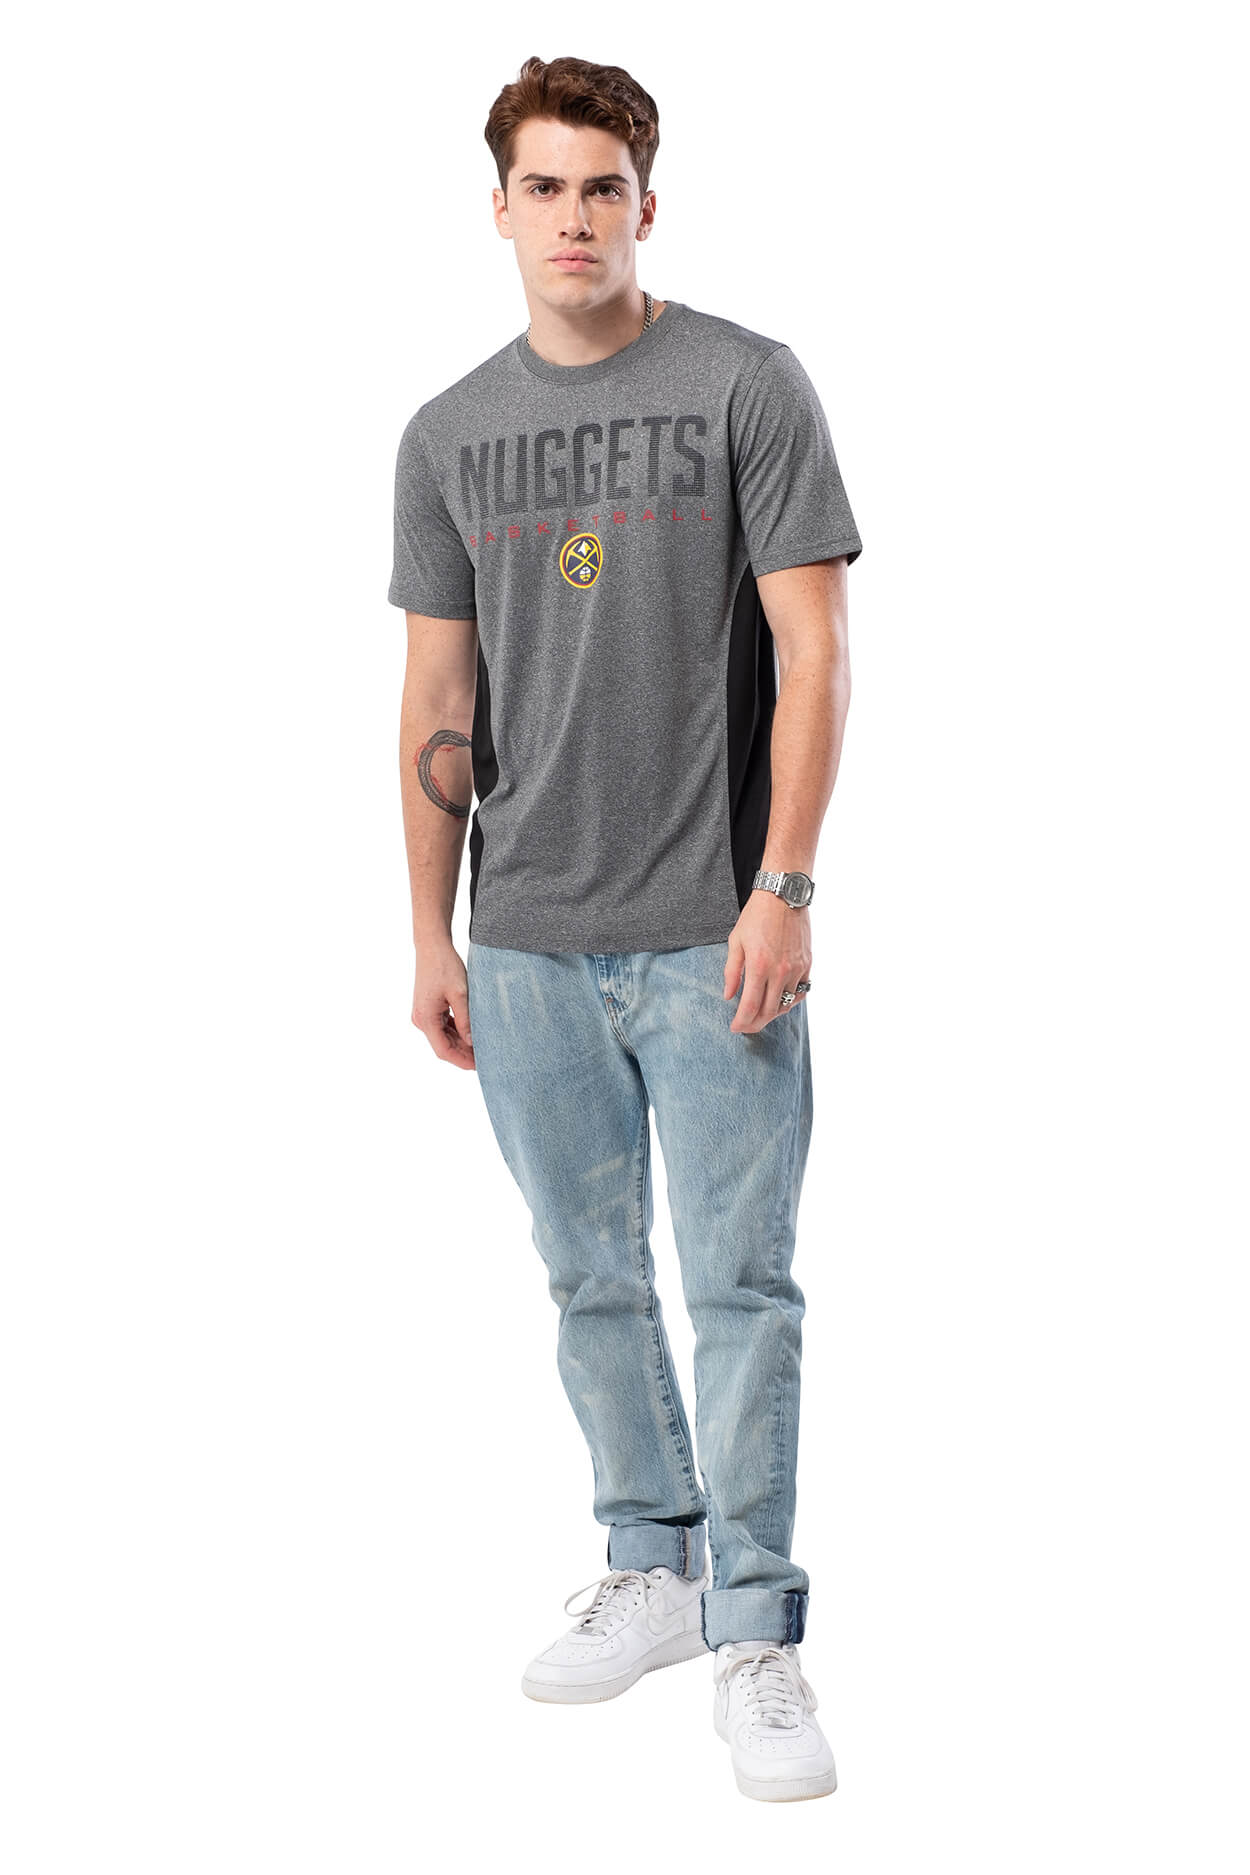 NBA Denver Nuggets Men's Short Sleeve Tee|Denver Nuggets